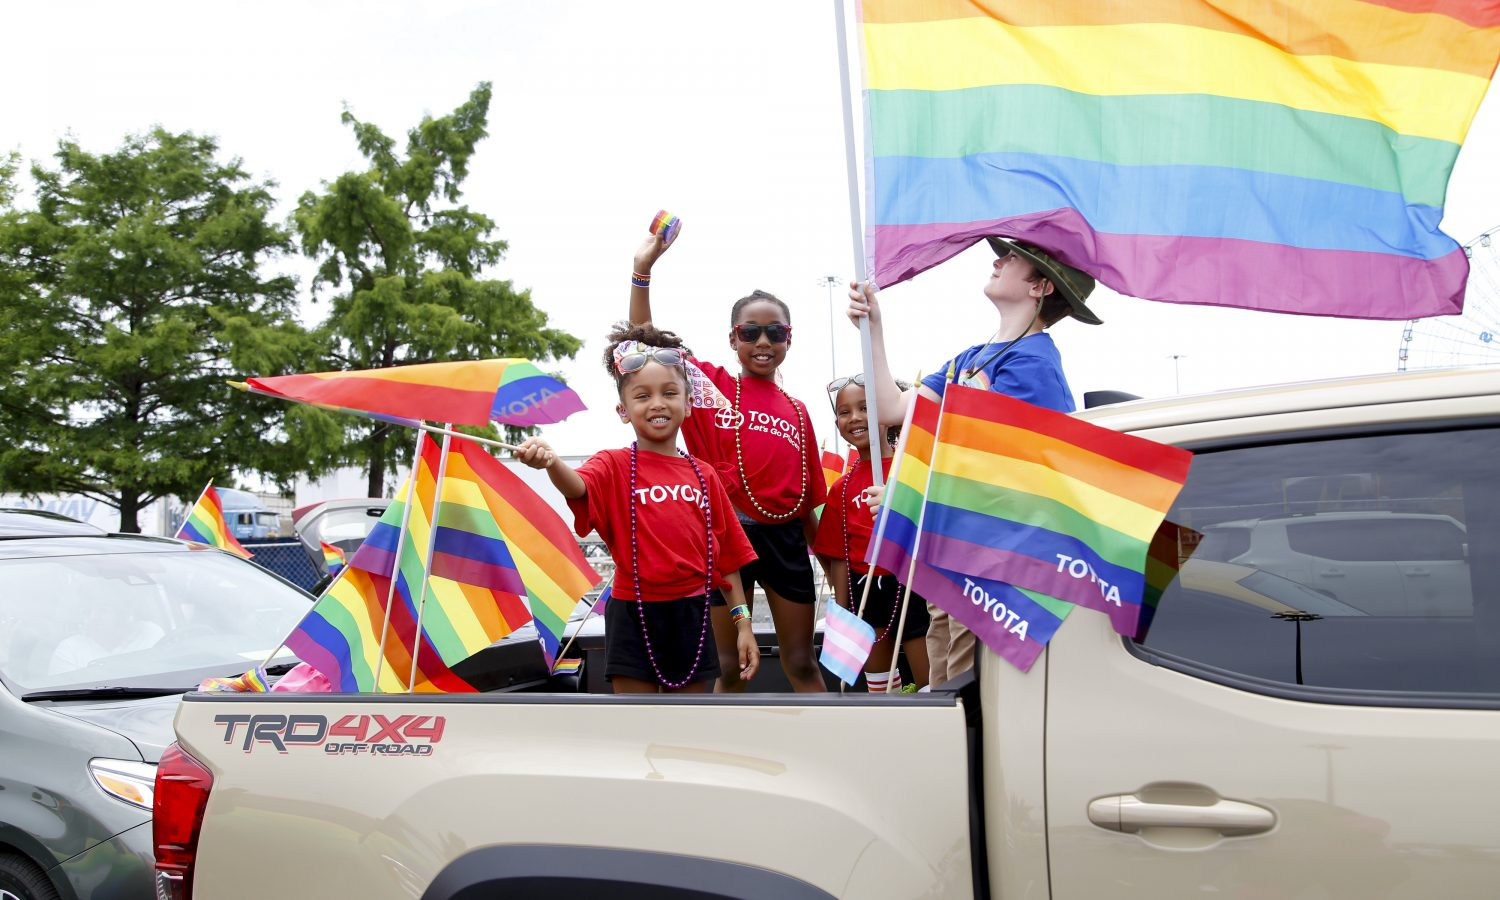 Protecting and Improving Equality for Toyota LGBTQ+ Team Members